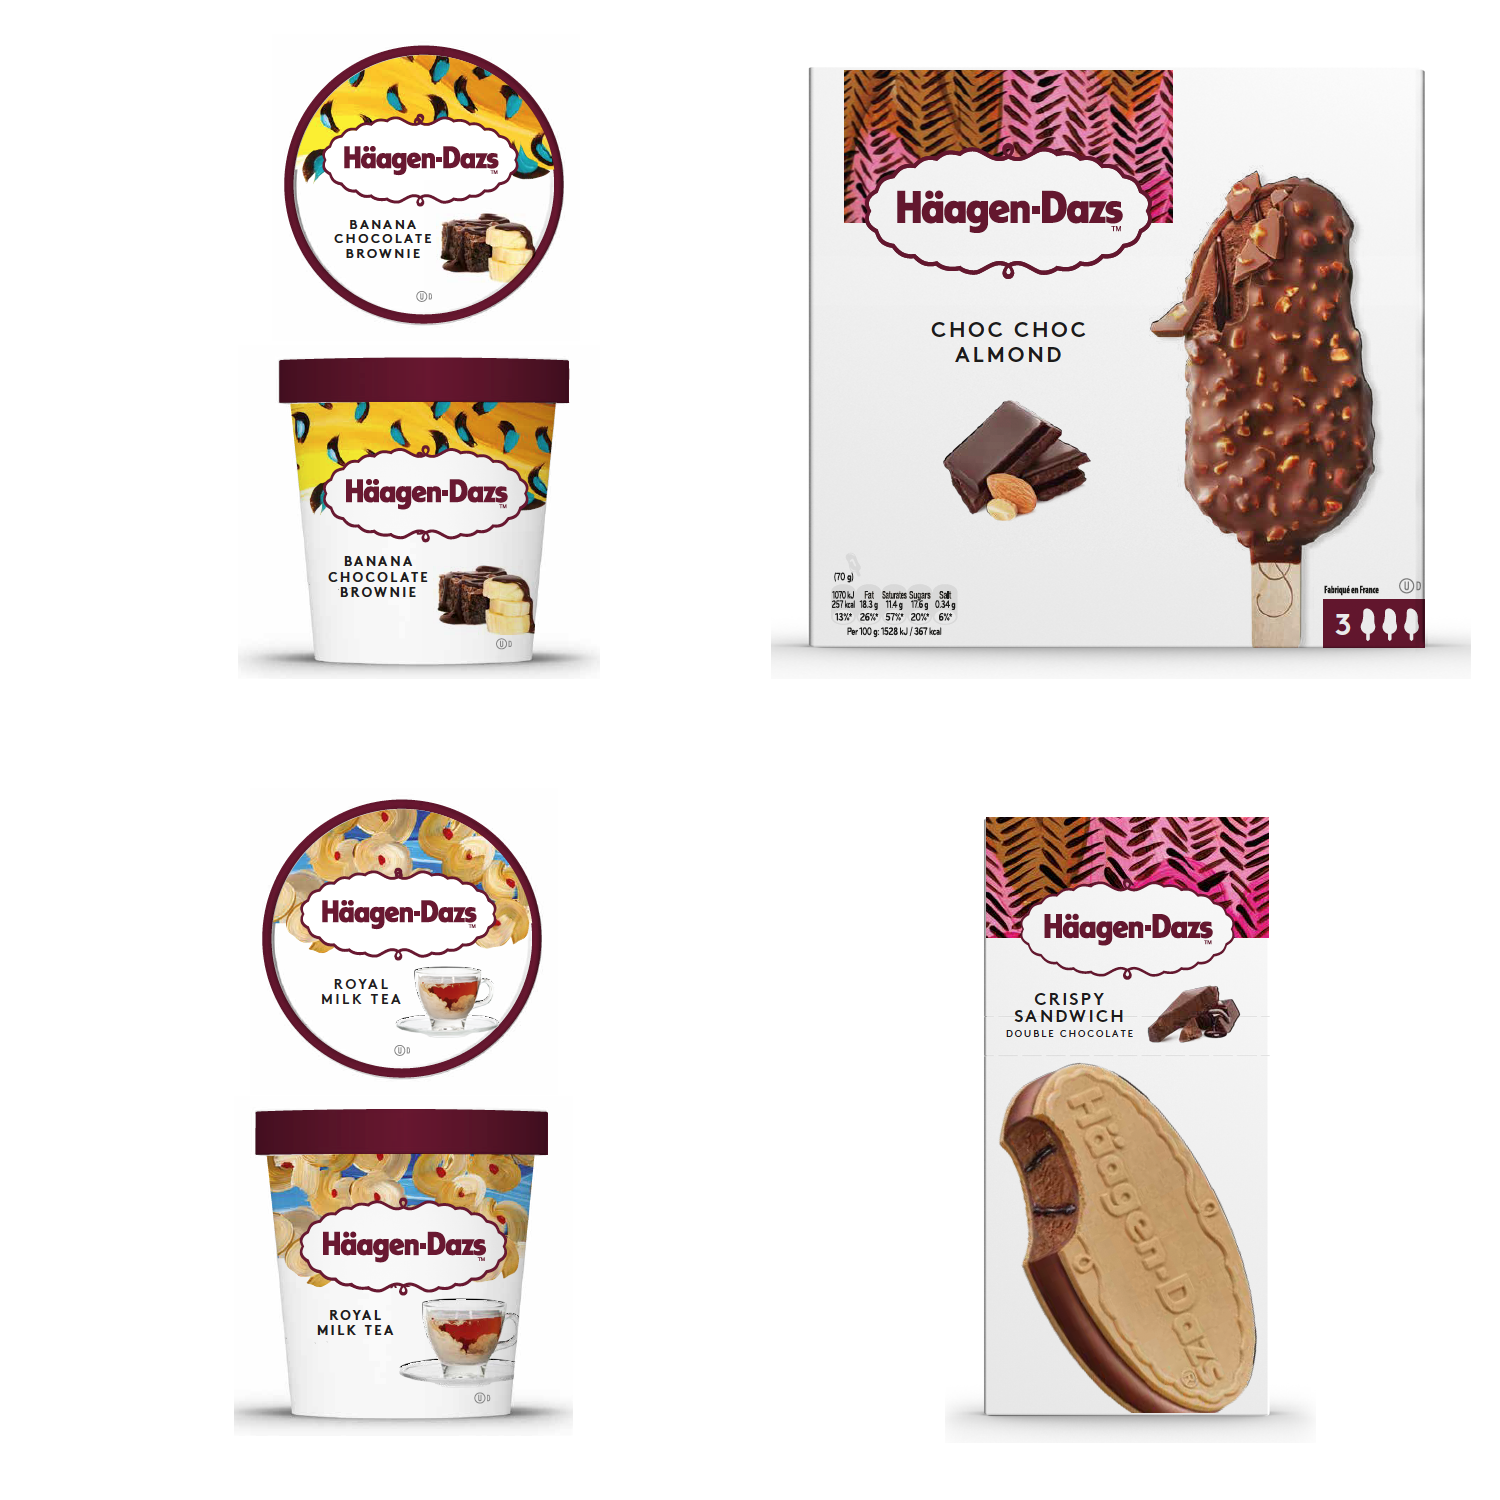 I created custom designs for Haagan Dazs. This was part of a package design overhaul featured in European & Asian markets .